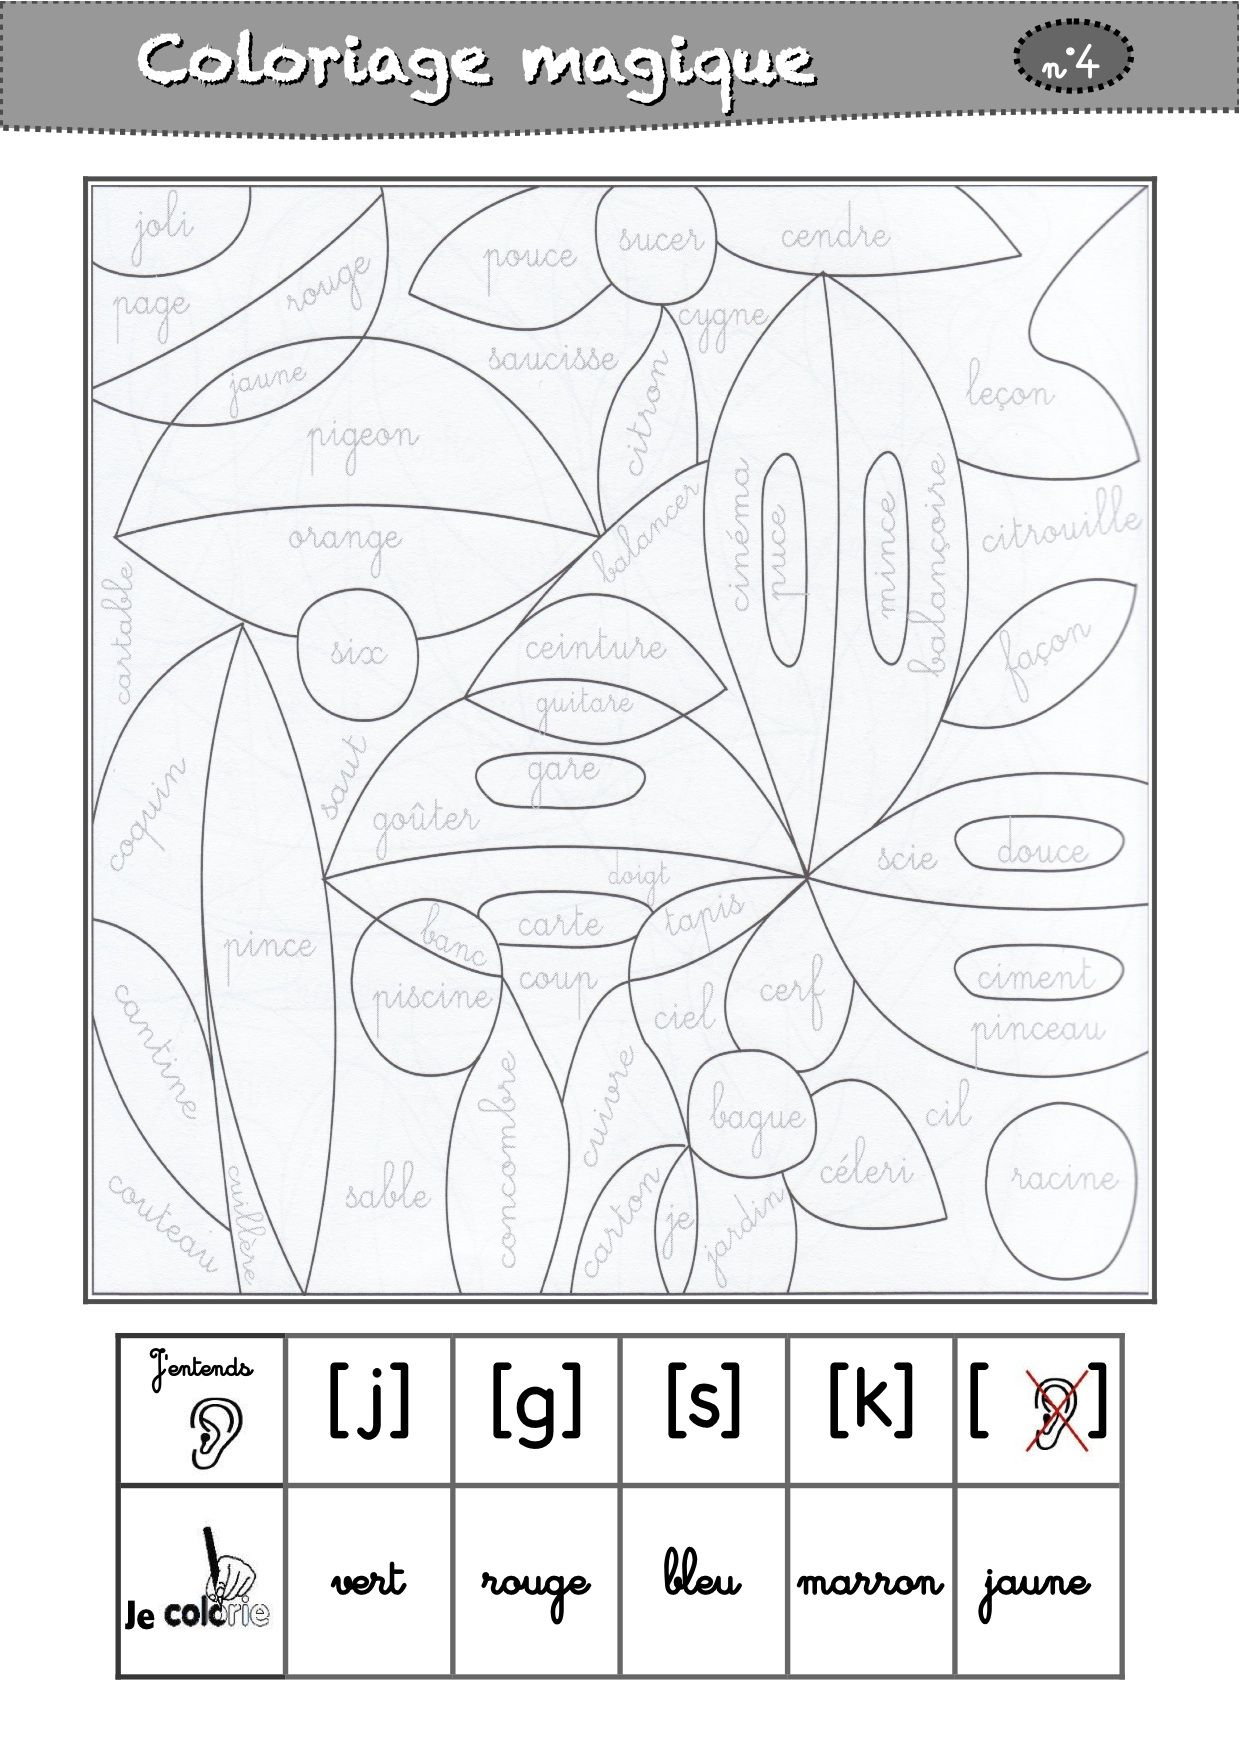 coloriages magiques cp lecture cp phonologie orthographe